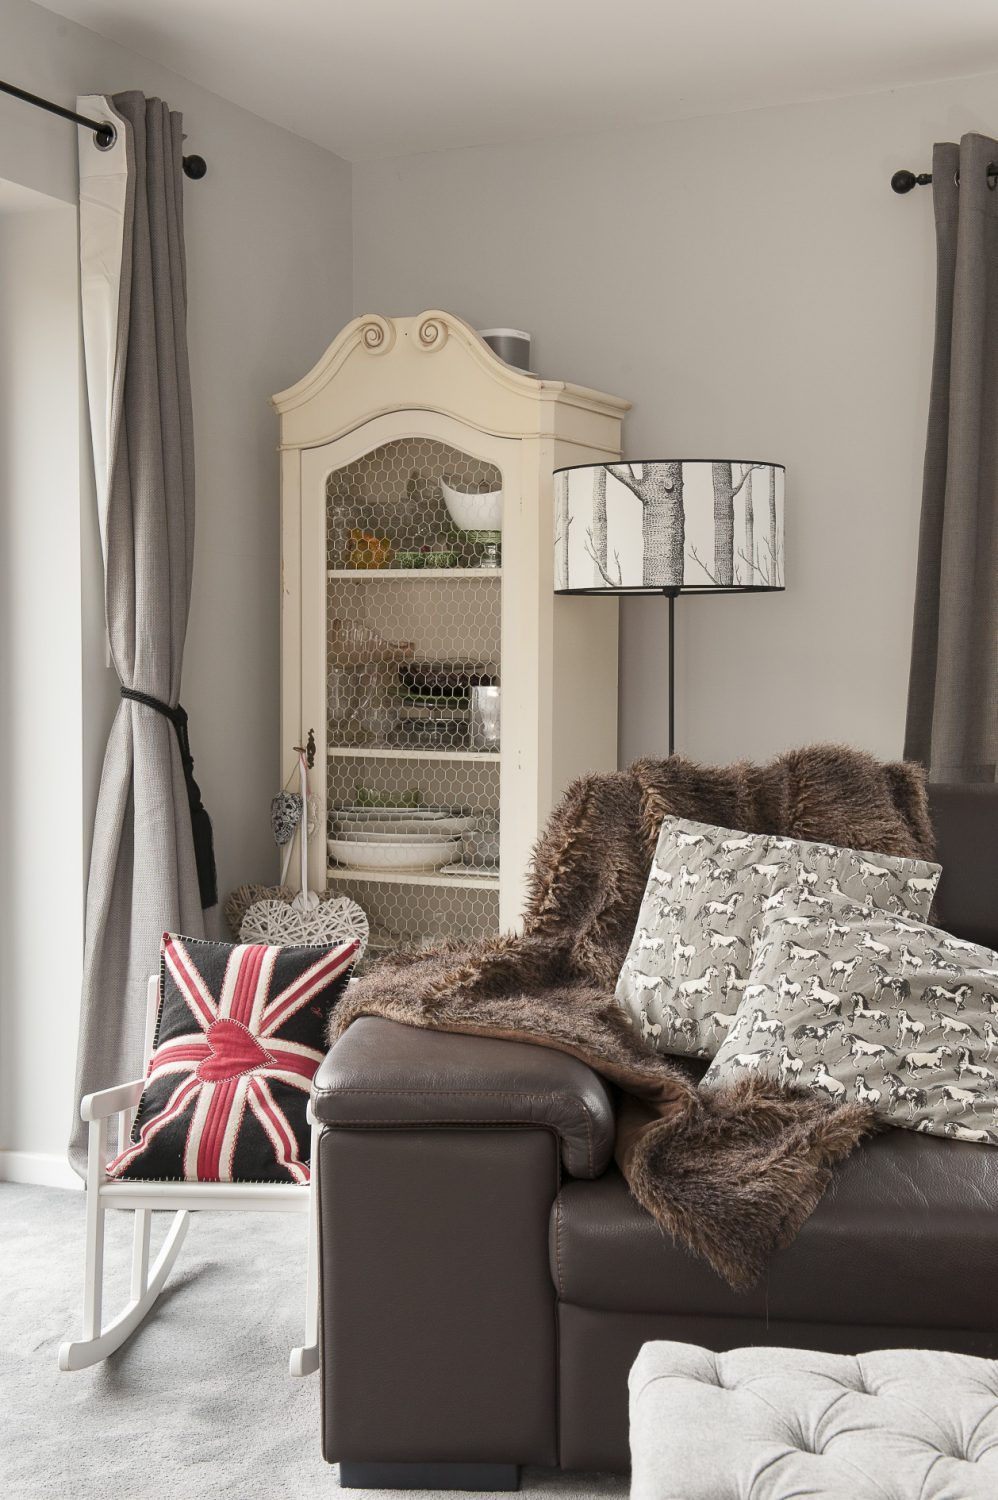 The sitting room is spacious enough to house a huge, leather L-shaped sofa. In one corner, next to a lamp with a shade that echoes the wallpaper opposite it, stands a distressed French armoire with chicken wire front